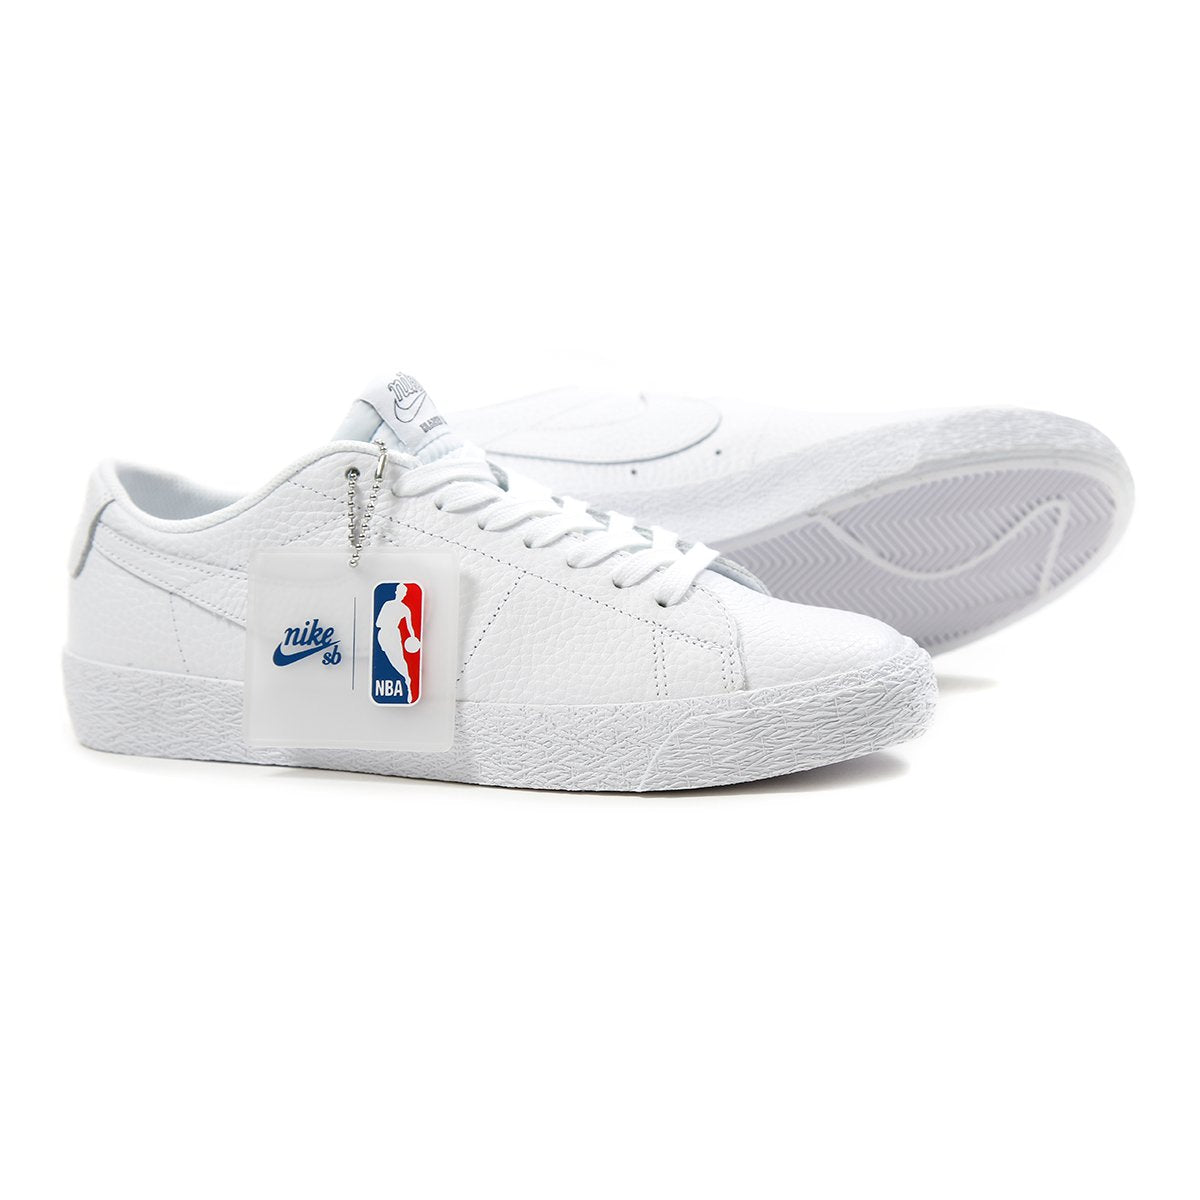 sports shoes 74310 84202 ConceptsIntl | Nike SB Zoom Blazer Low NBA (White/White/Rush ...